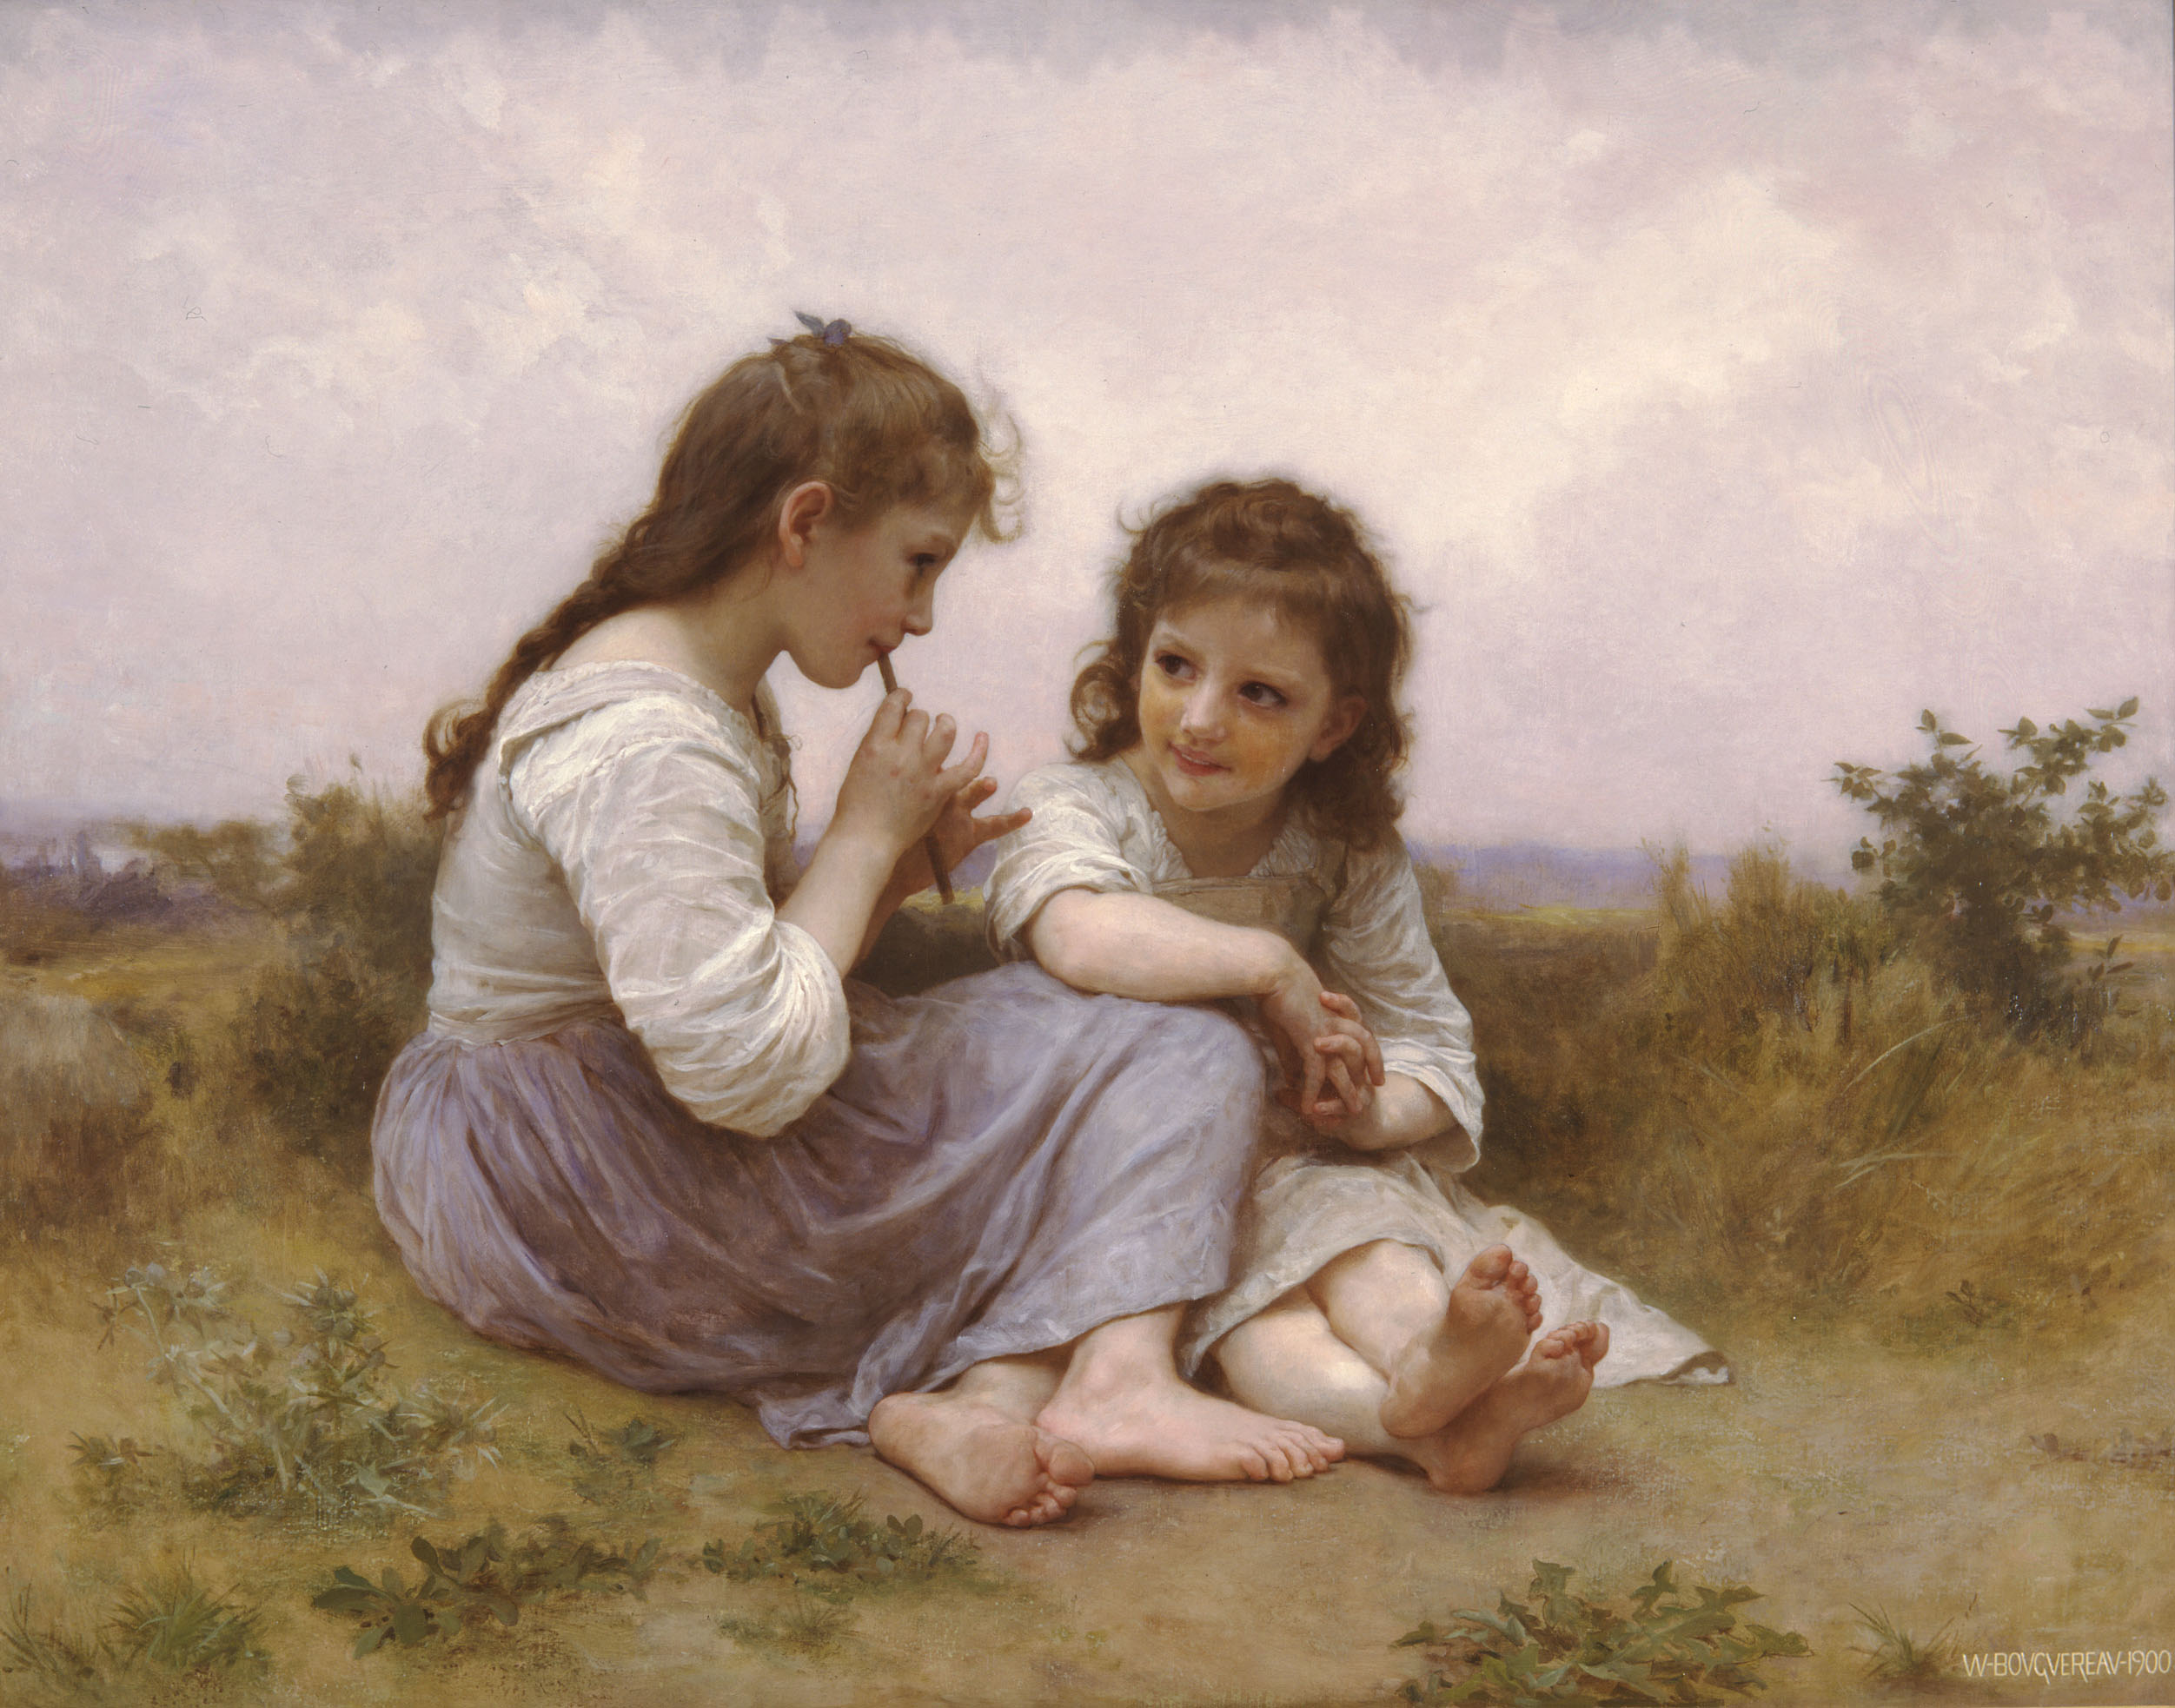 The Bouguereau painting I saw 30 years ago - still in my